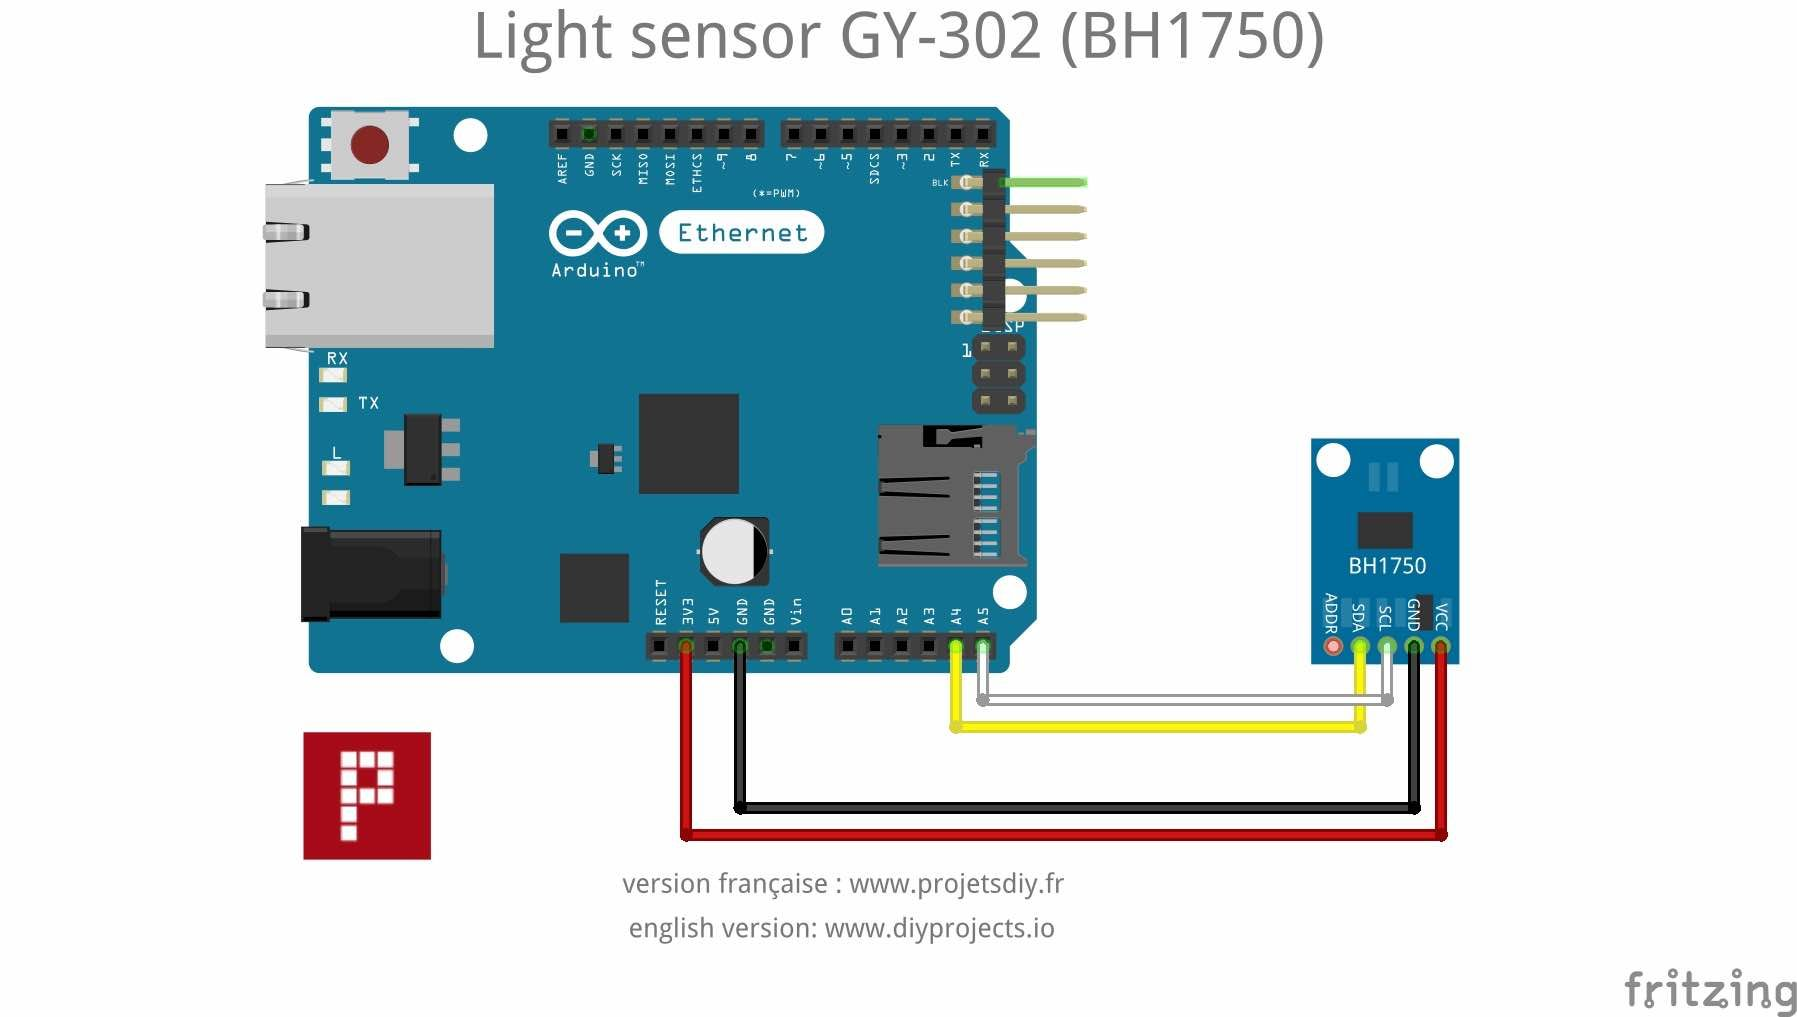 Bh1750 Gy 302 Measure The Lighting Quality Of Your Home Arduino Audio Receiver 433 Mhz Rf Module Using Circuit Diagram Nonstop Free In Brightness Sensor And An Esp8266 Or Esp32